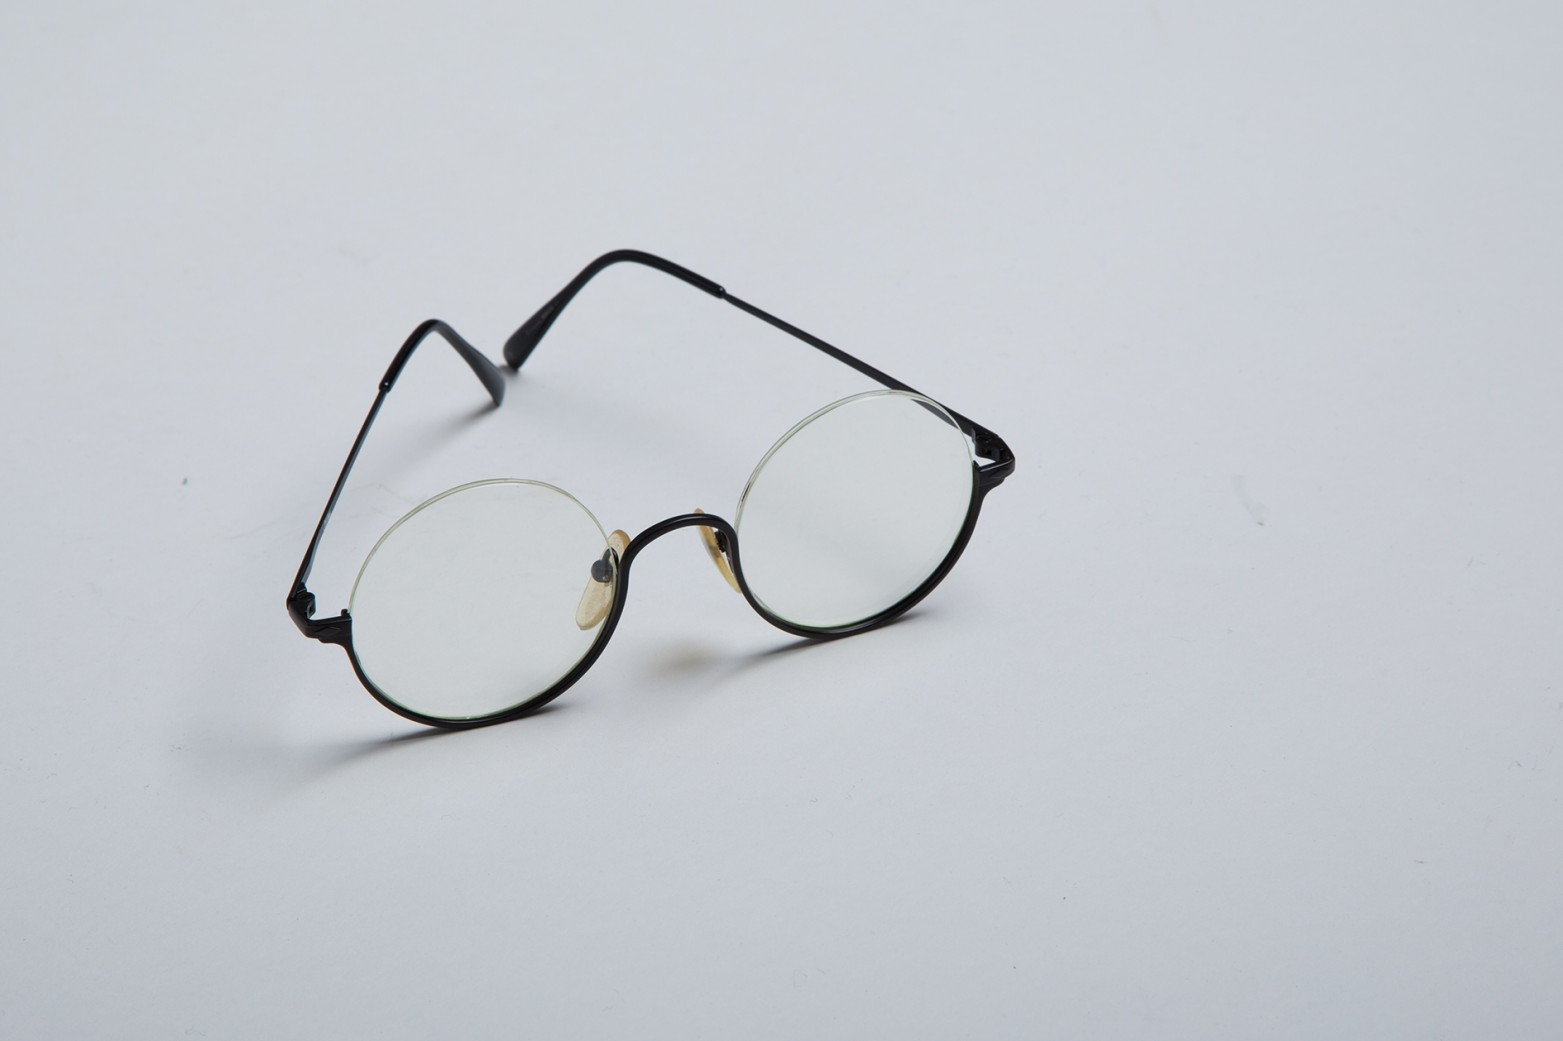 Vintage Jean Paul Gaultier Glasses